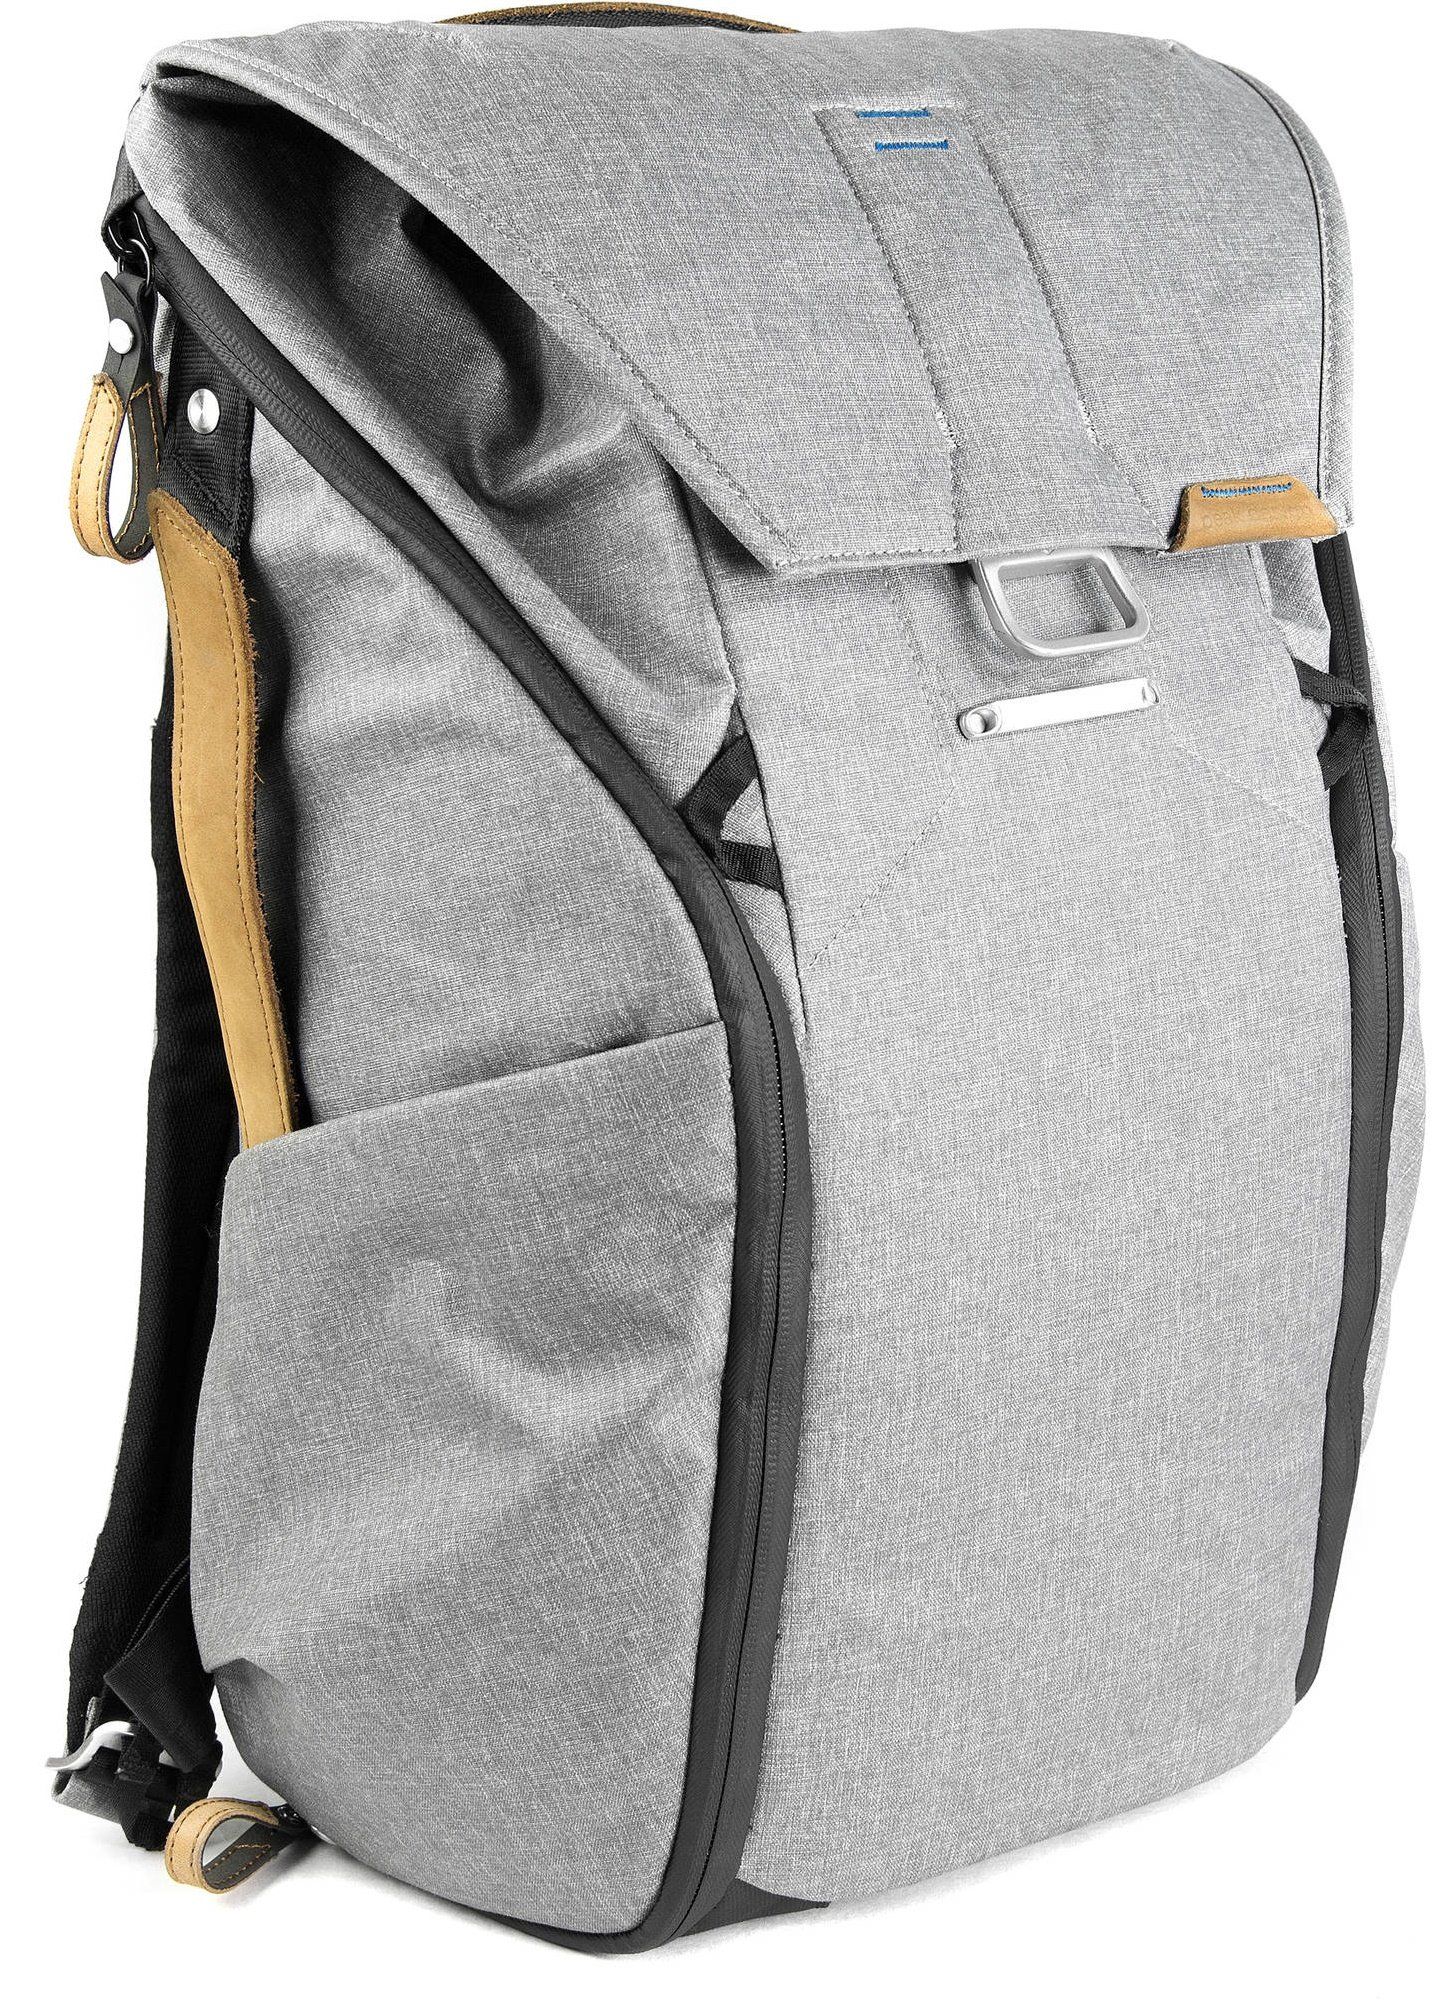 PEAK DESIGN The Everyday Backpack 30L fotobatoh - světle šedý